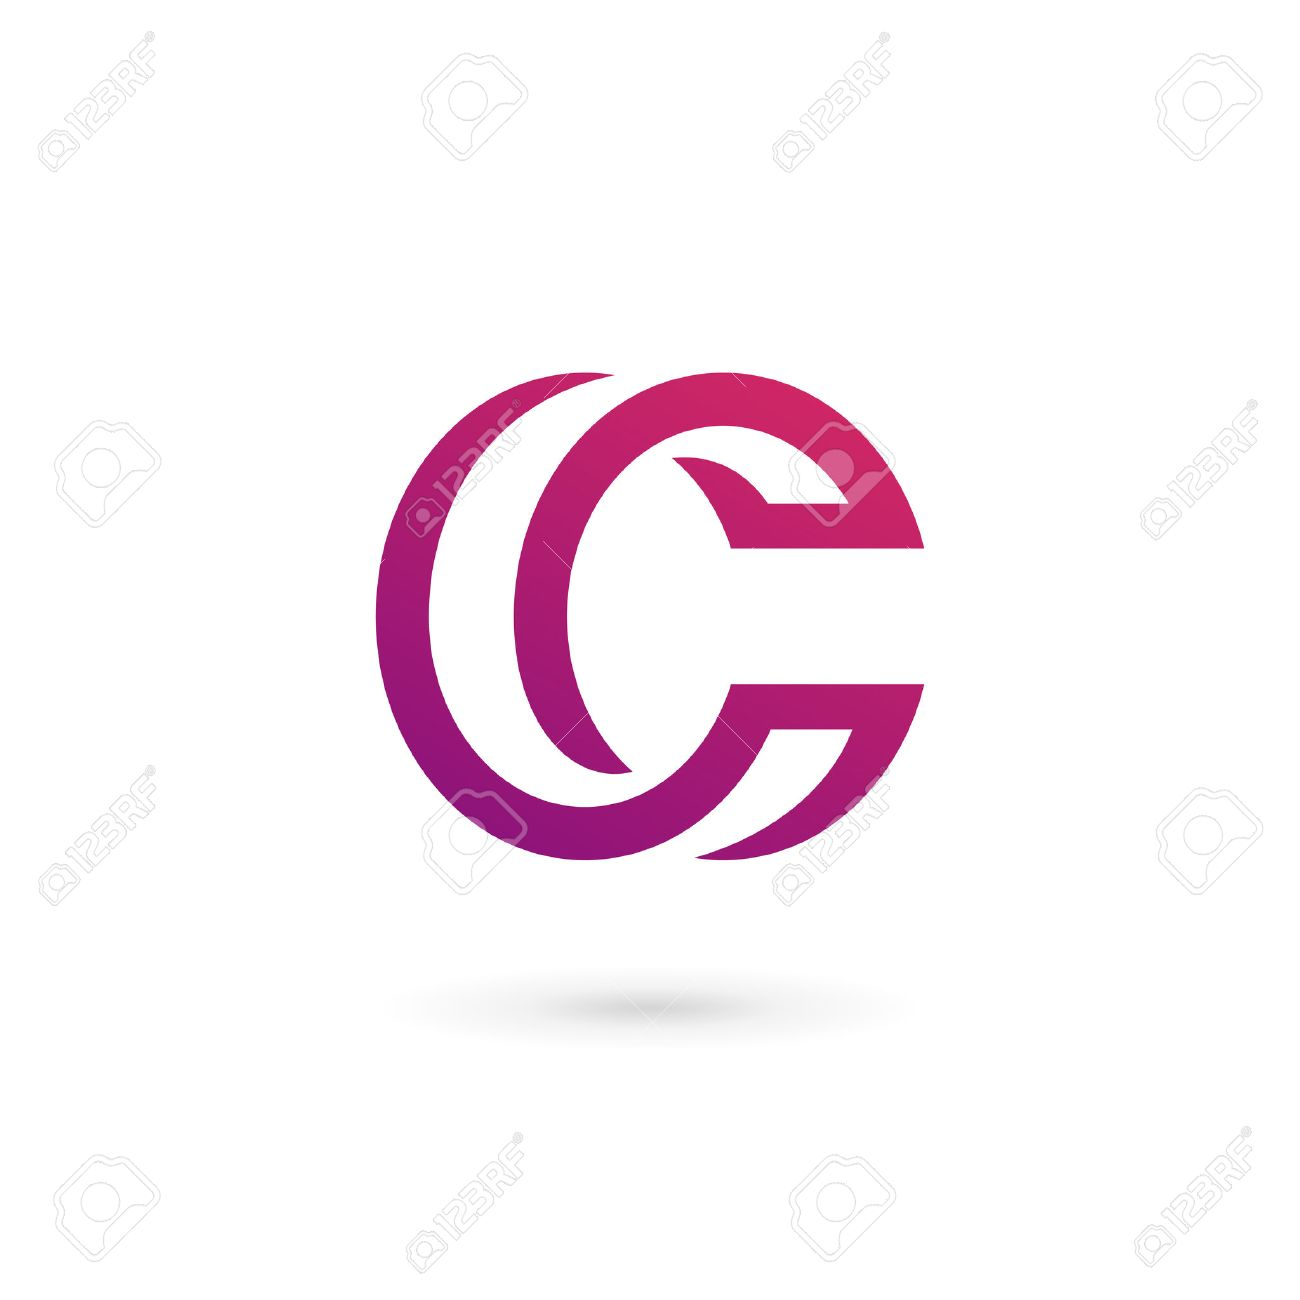 Letter C Logo Icon Design Template Elements Royalty Free Cliparts